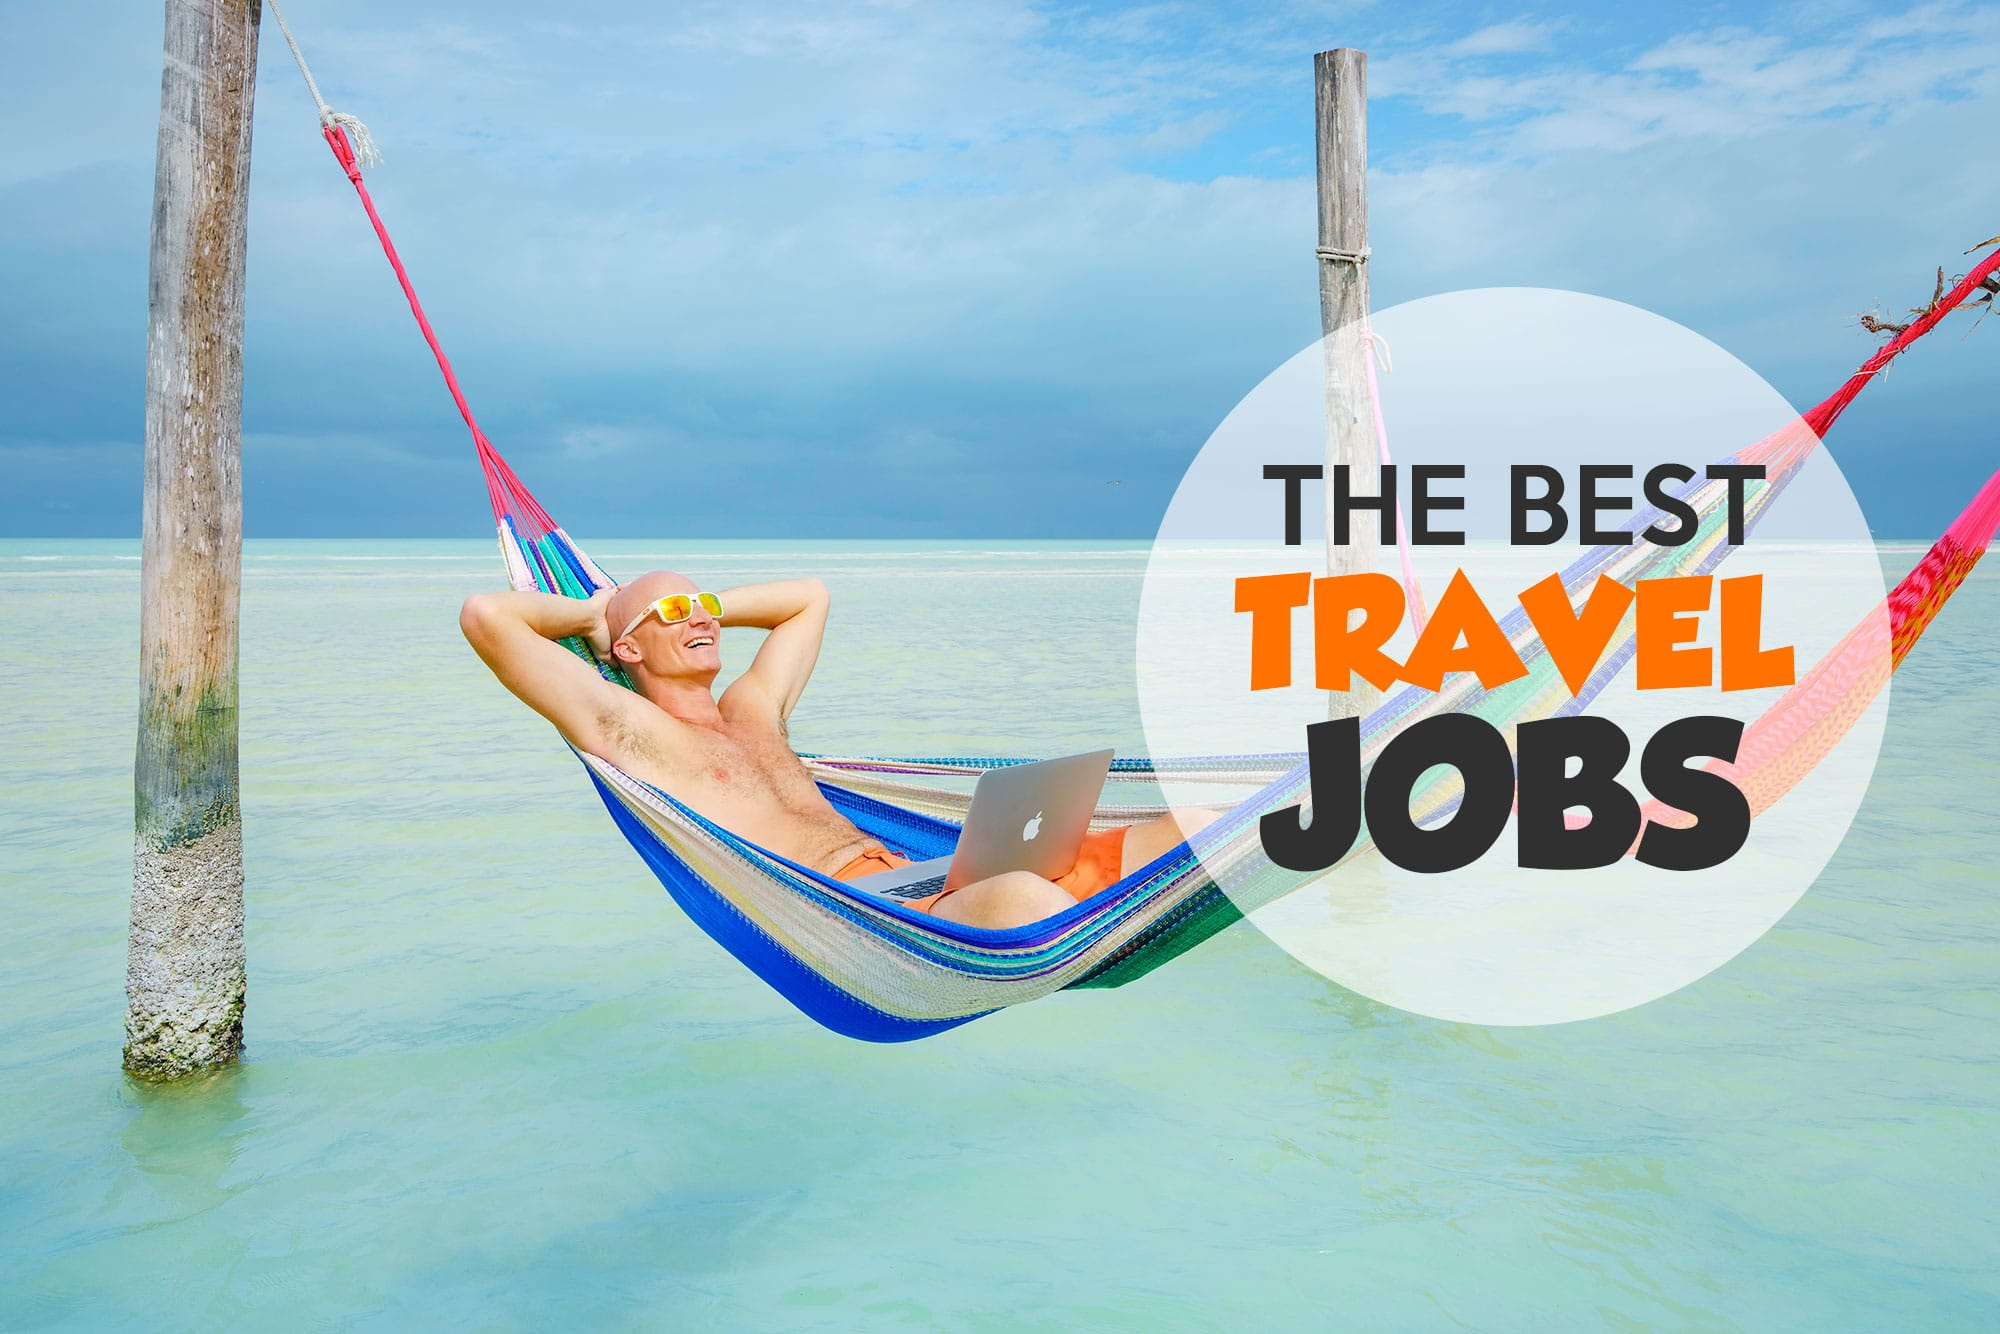 40 Best Travel Jobs To Make Money Traveling (They Really Exist!)